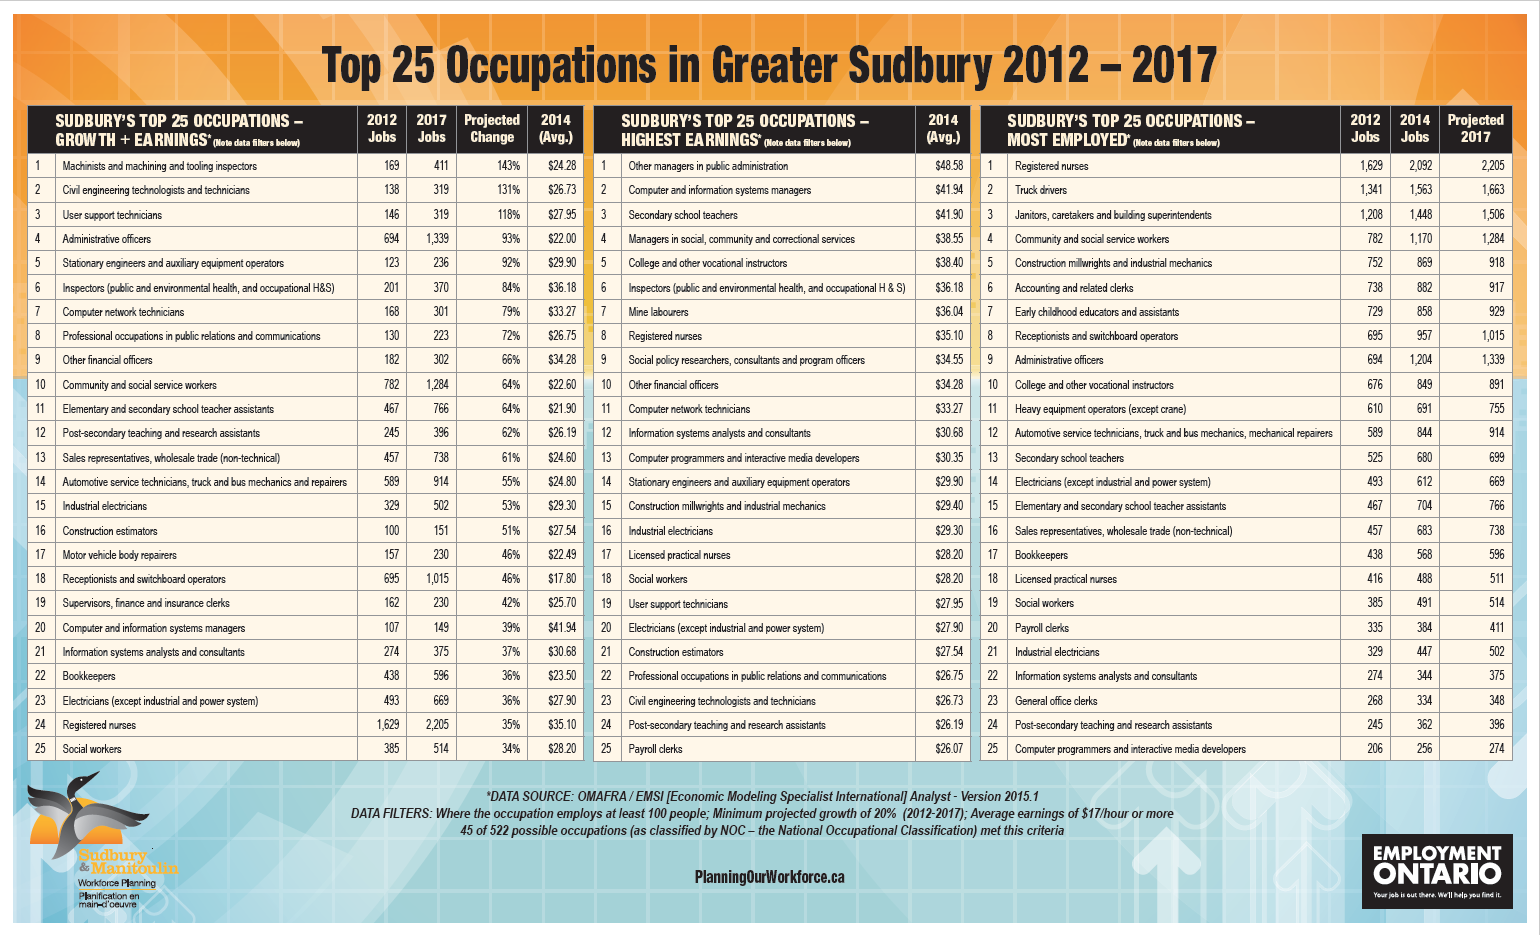 Top 25 Occupations in Greater Sudbury 2012 – 2017